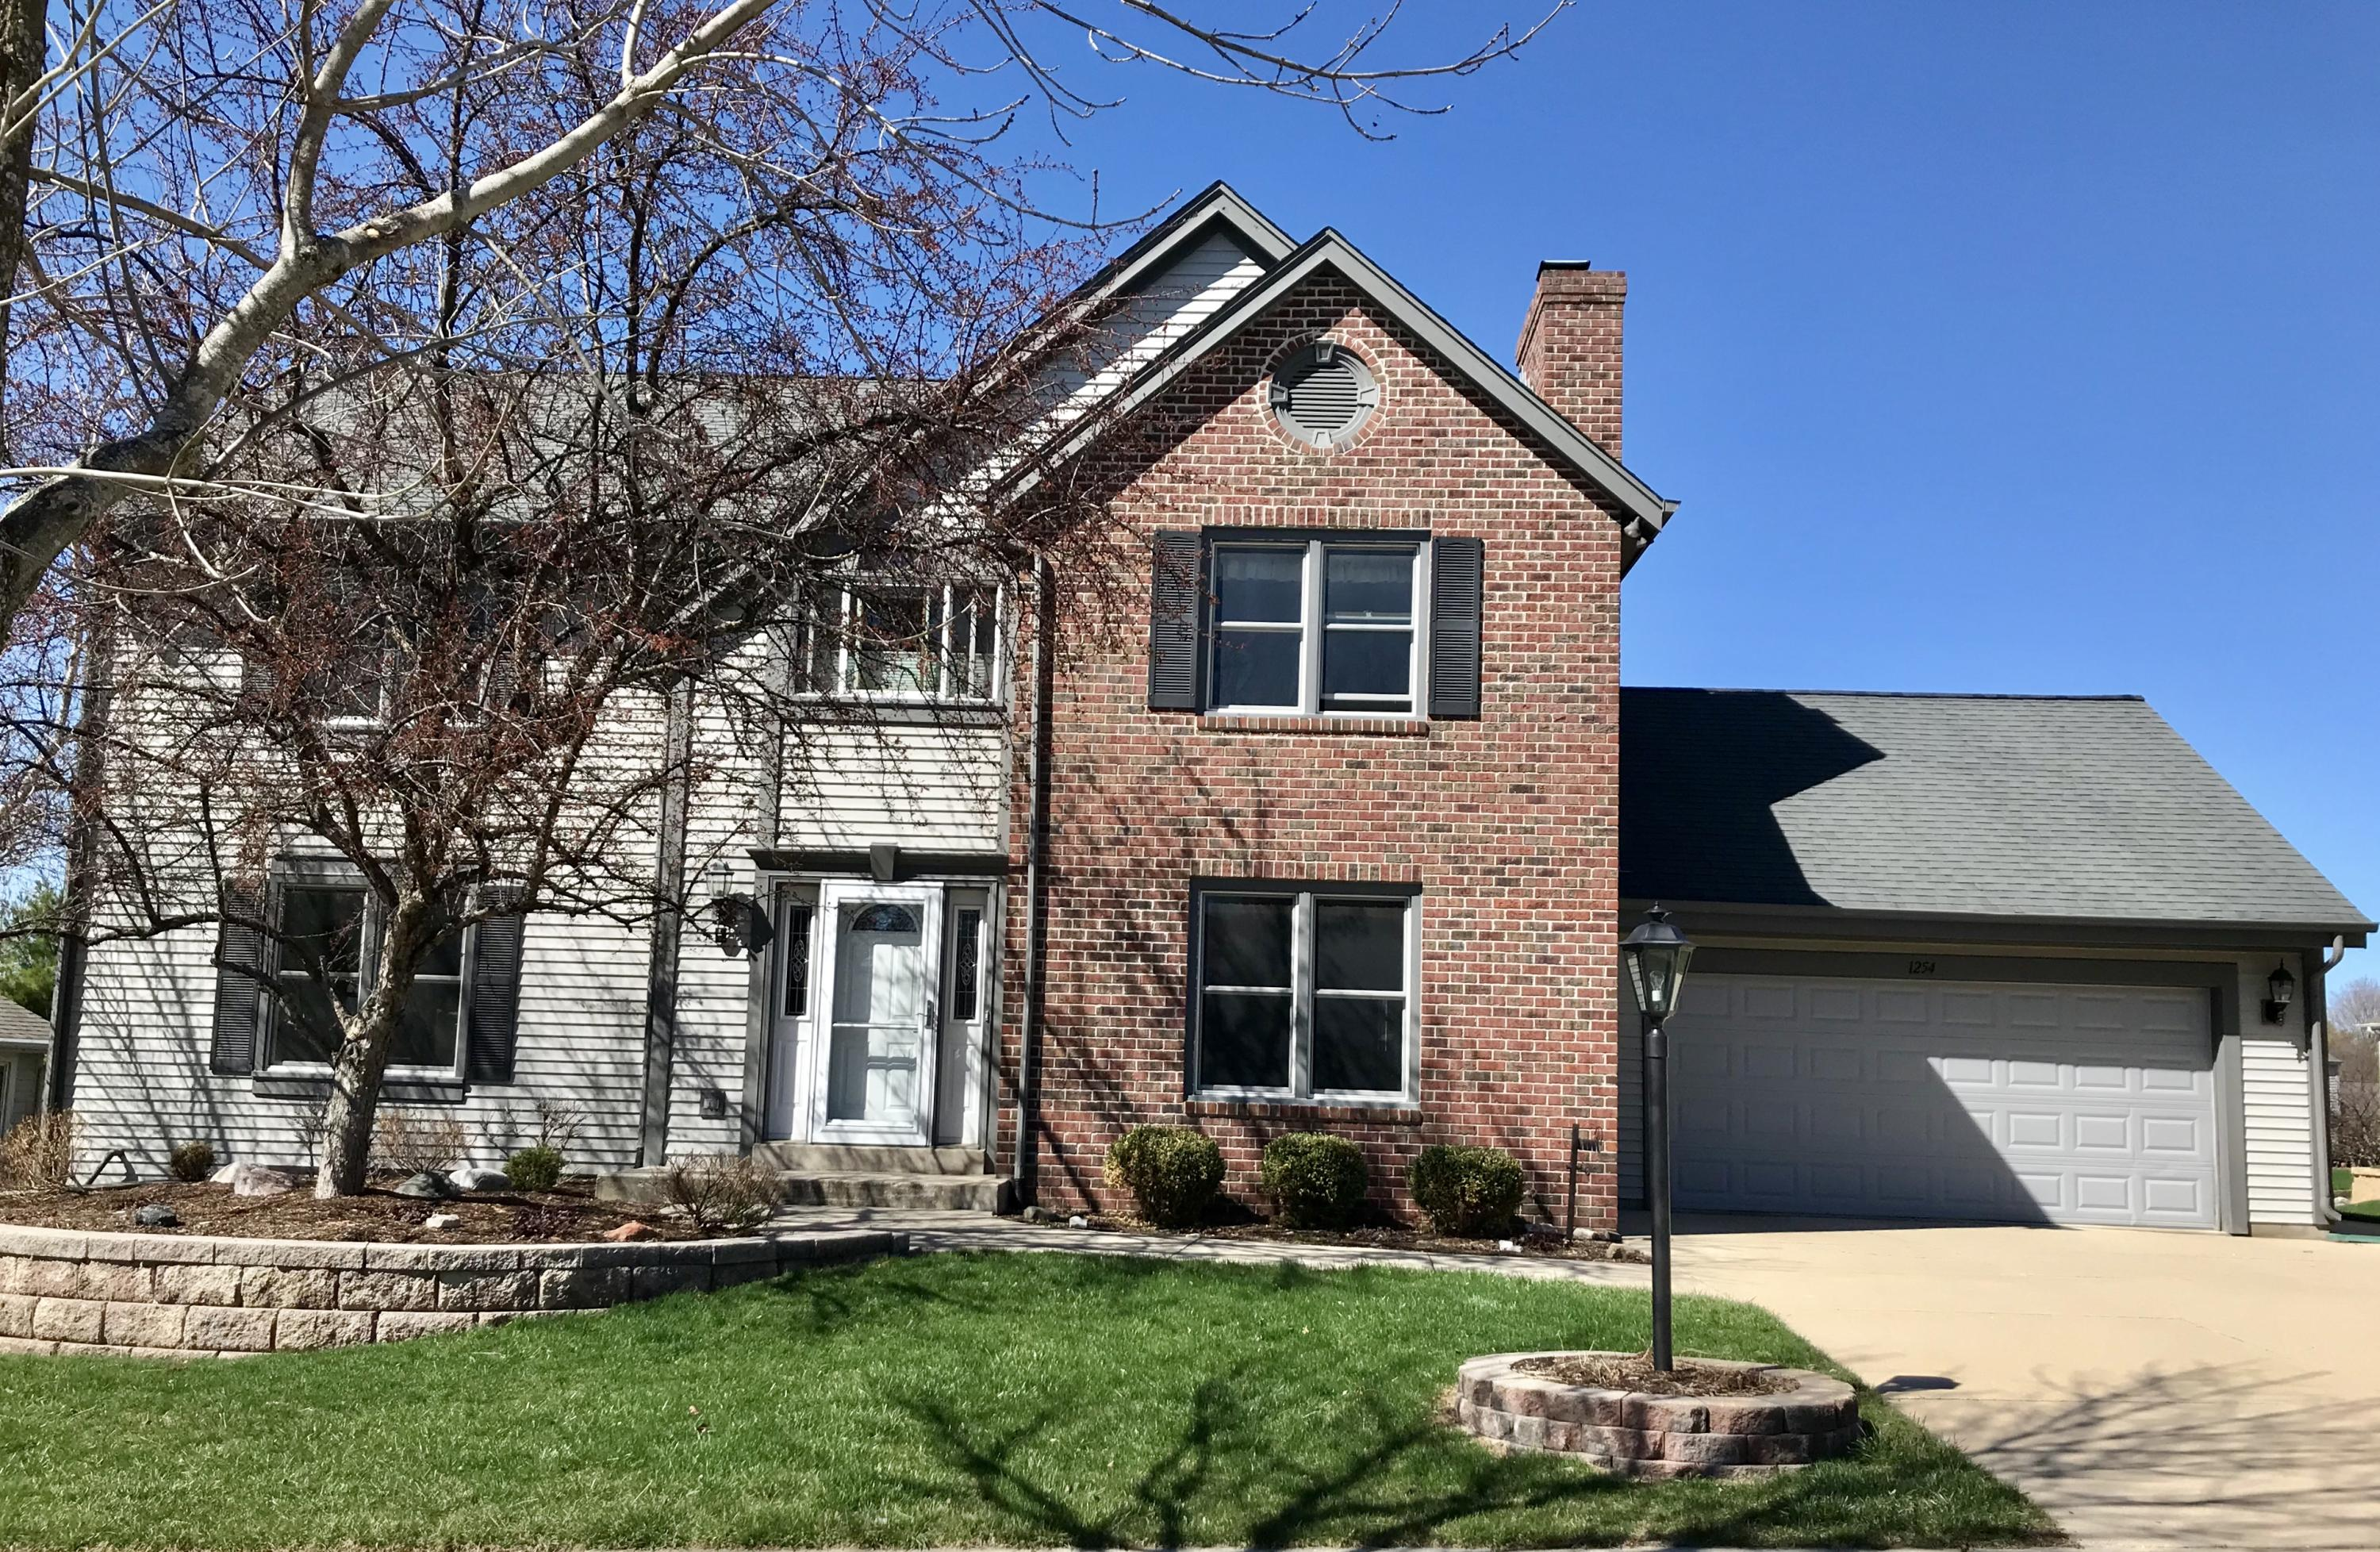 1254 Highpoint Ln, Waukesha, Wisconsin 53189, 5 Bedrooms Bedrooms, ,3 BathroomsBathrooms,Single-Family,For Sale,Highpoint Ln,1632719